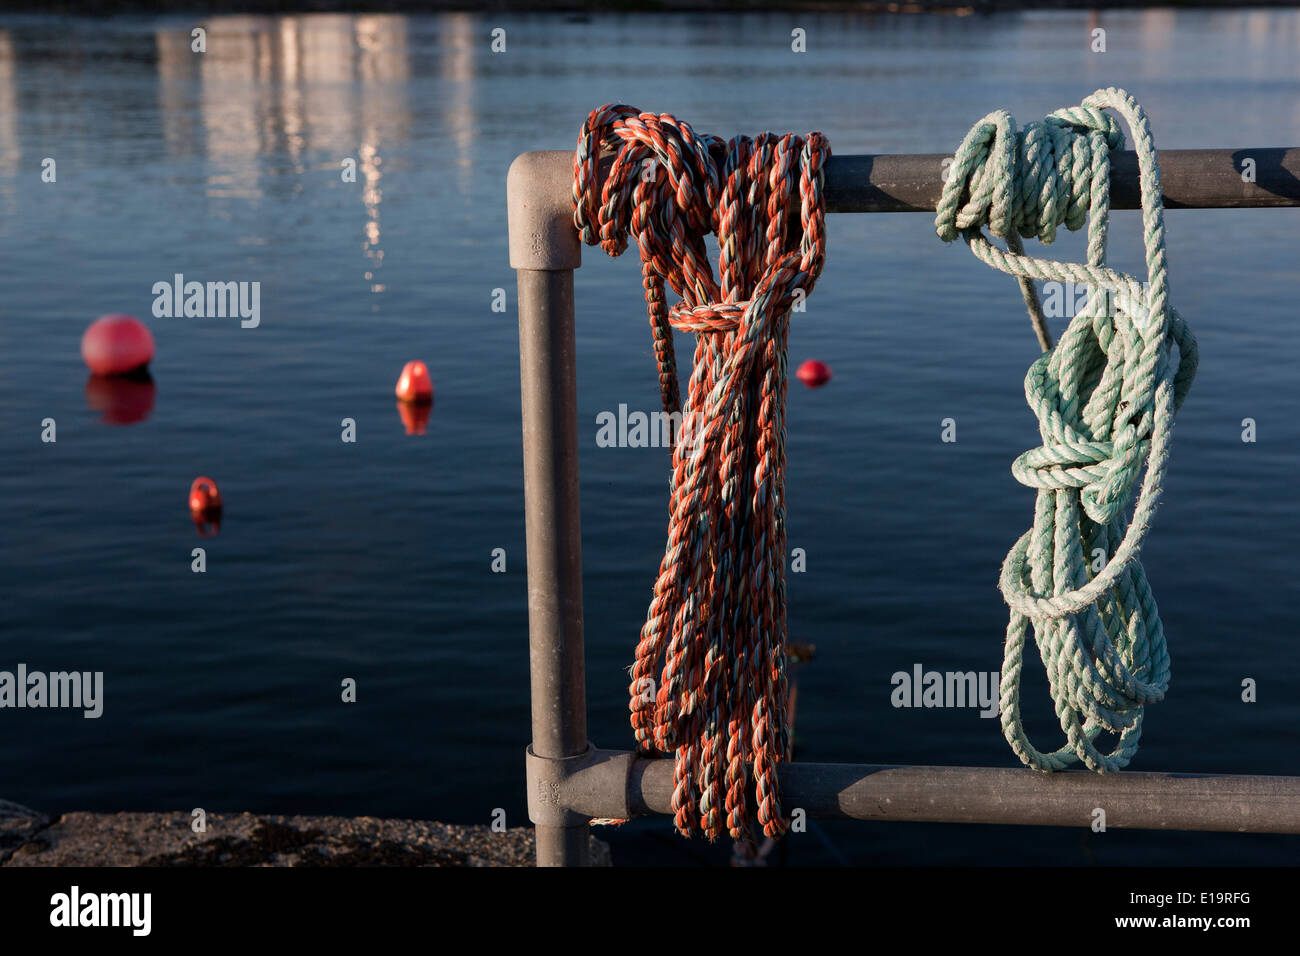 Tied rope to a metal post, without people. - Stock Image